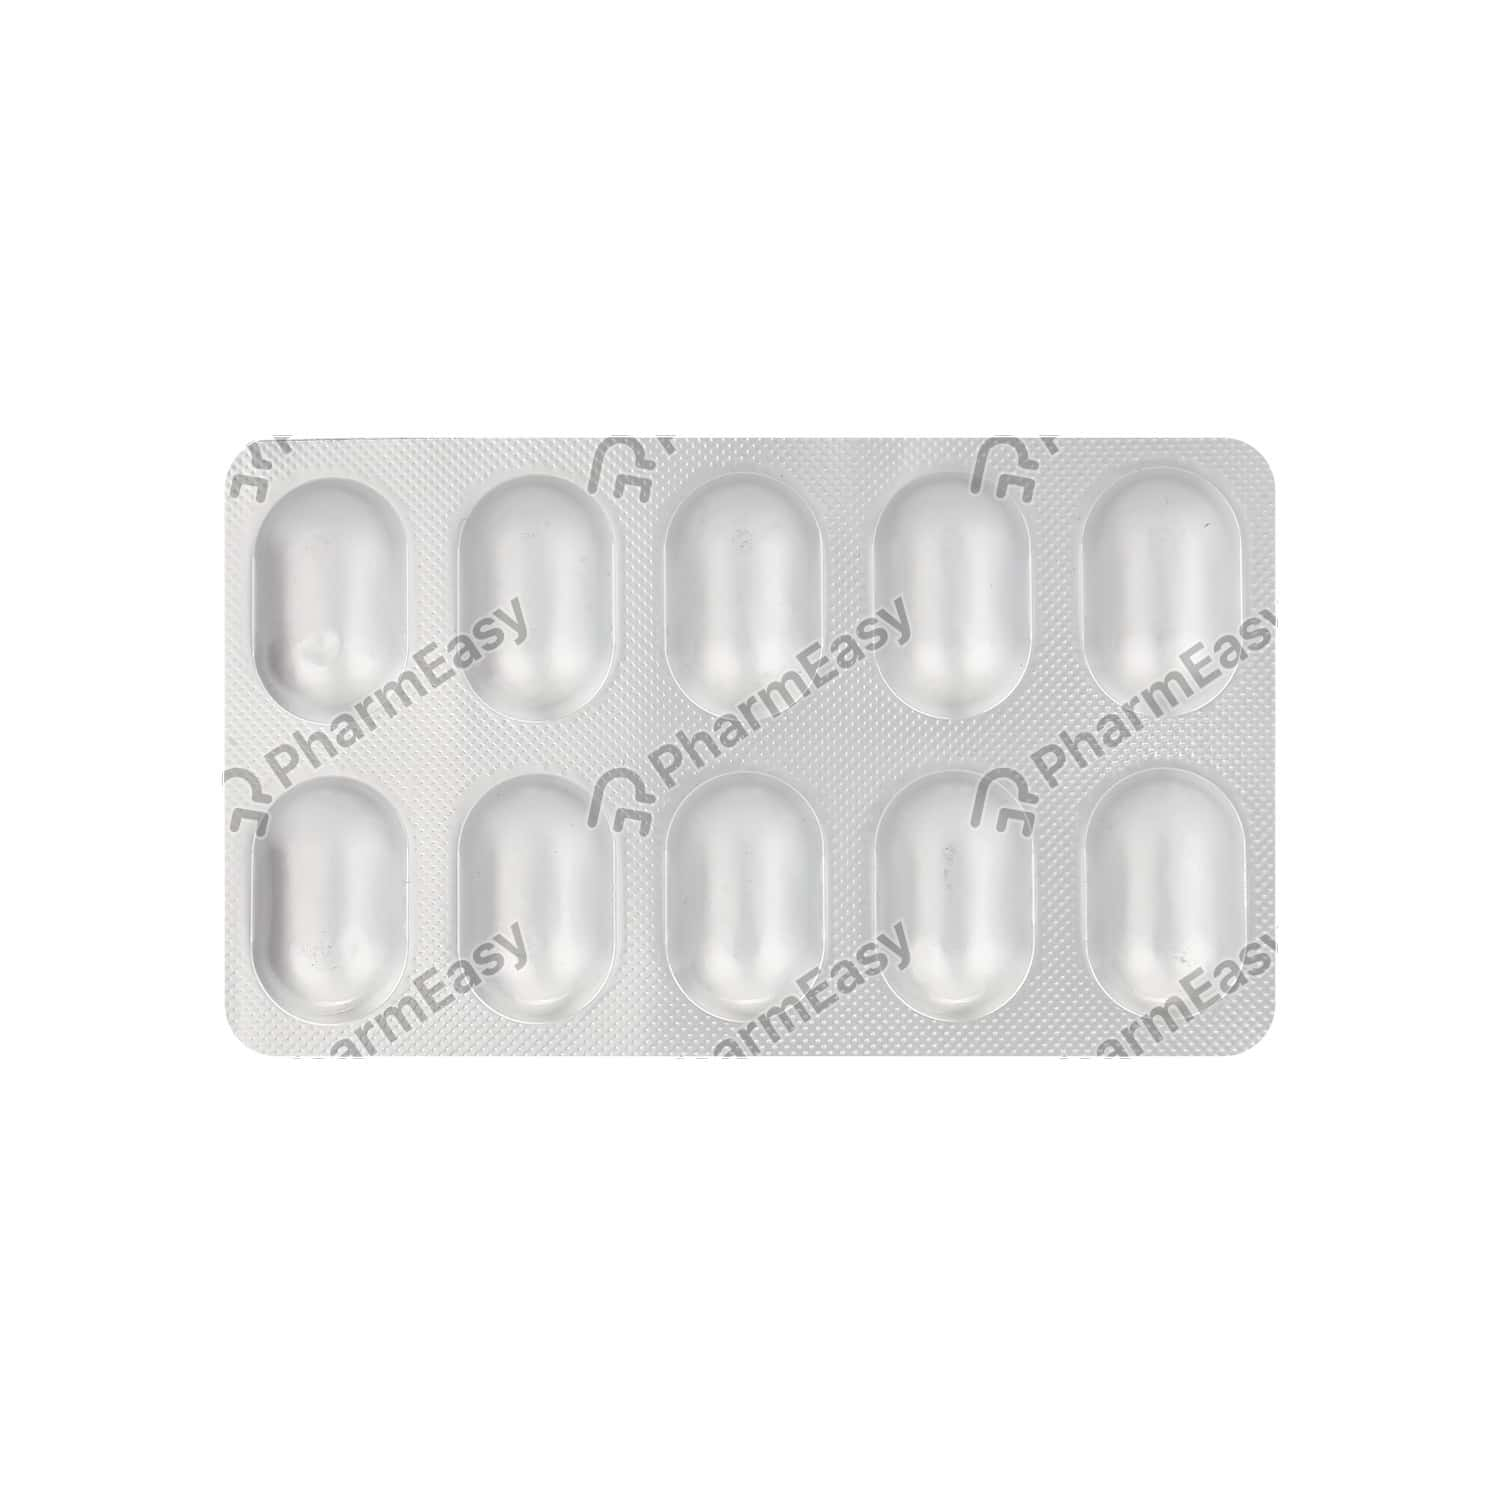 Glimer 2mg Tablet